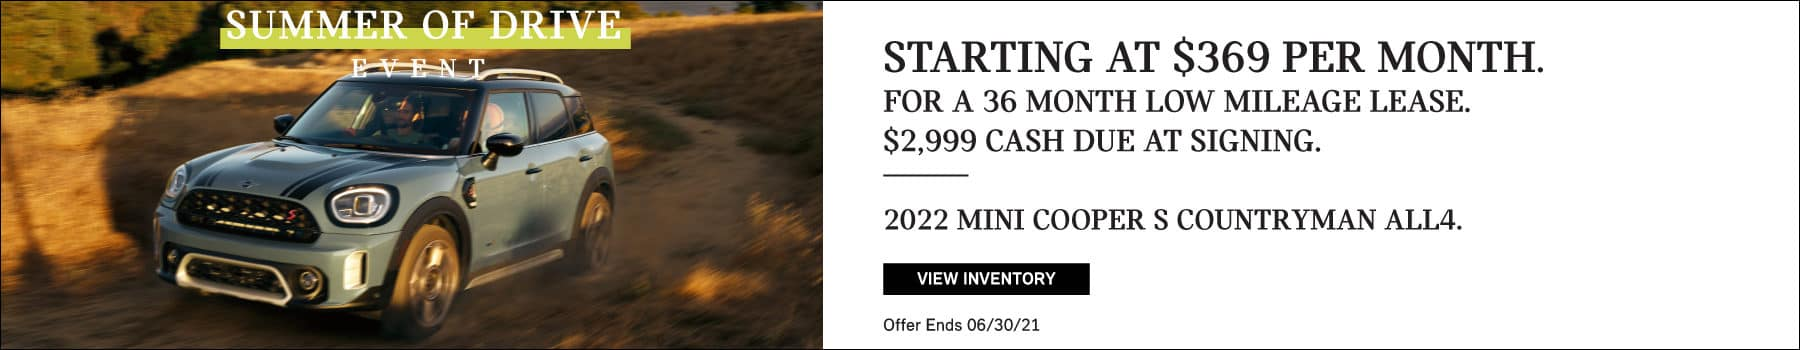 Lease a MINI Cooper S Countryman ALL4. Starting at $369 per month for a 36 month low mileage lease. $2999 cash due at signing.